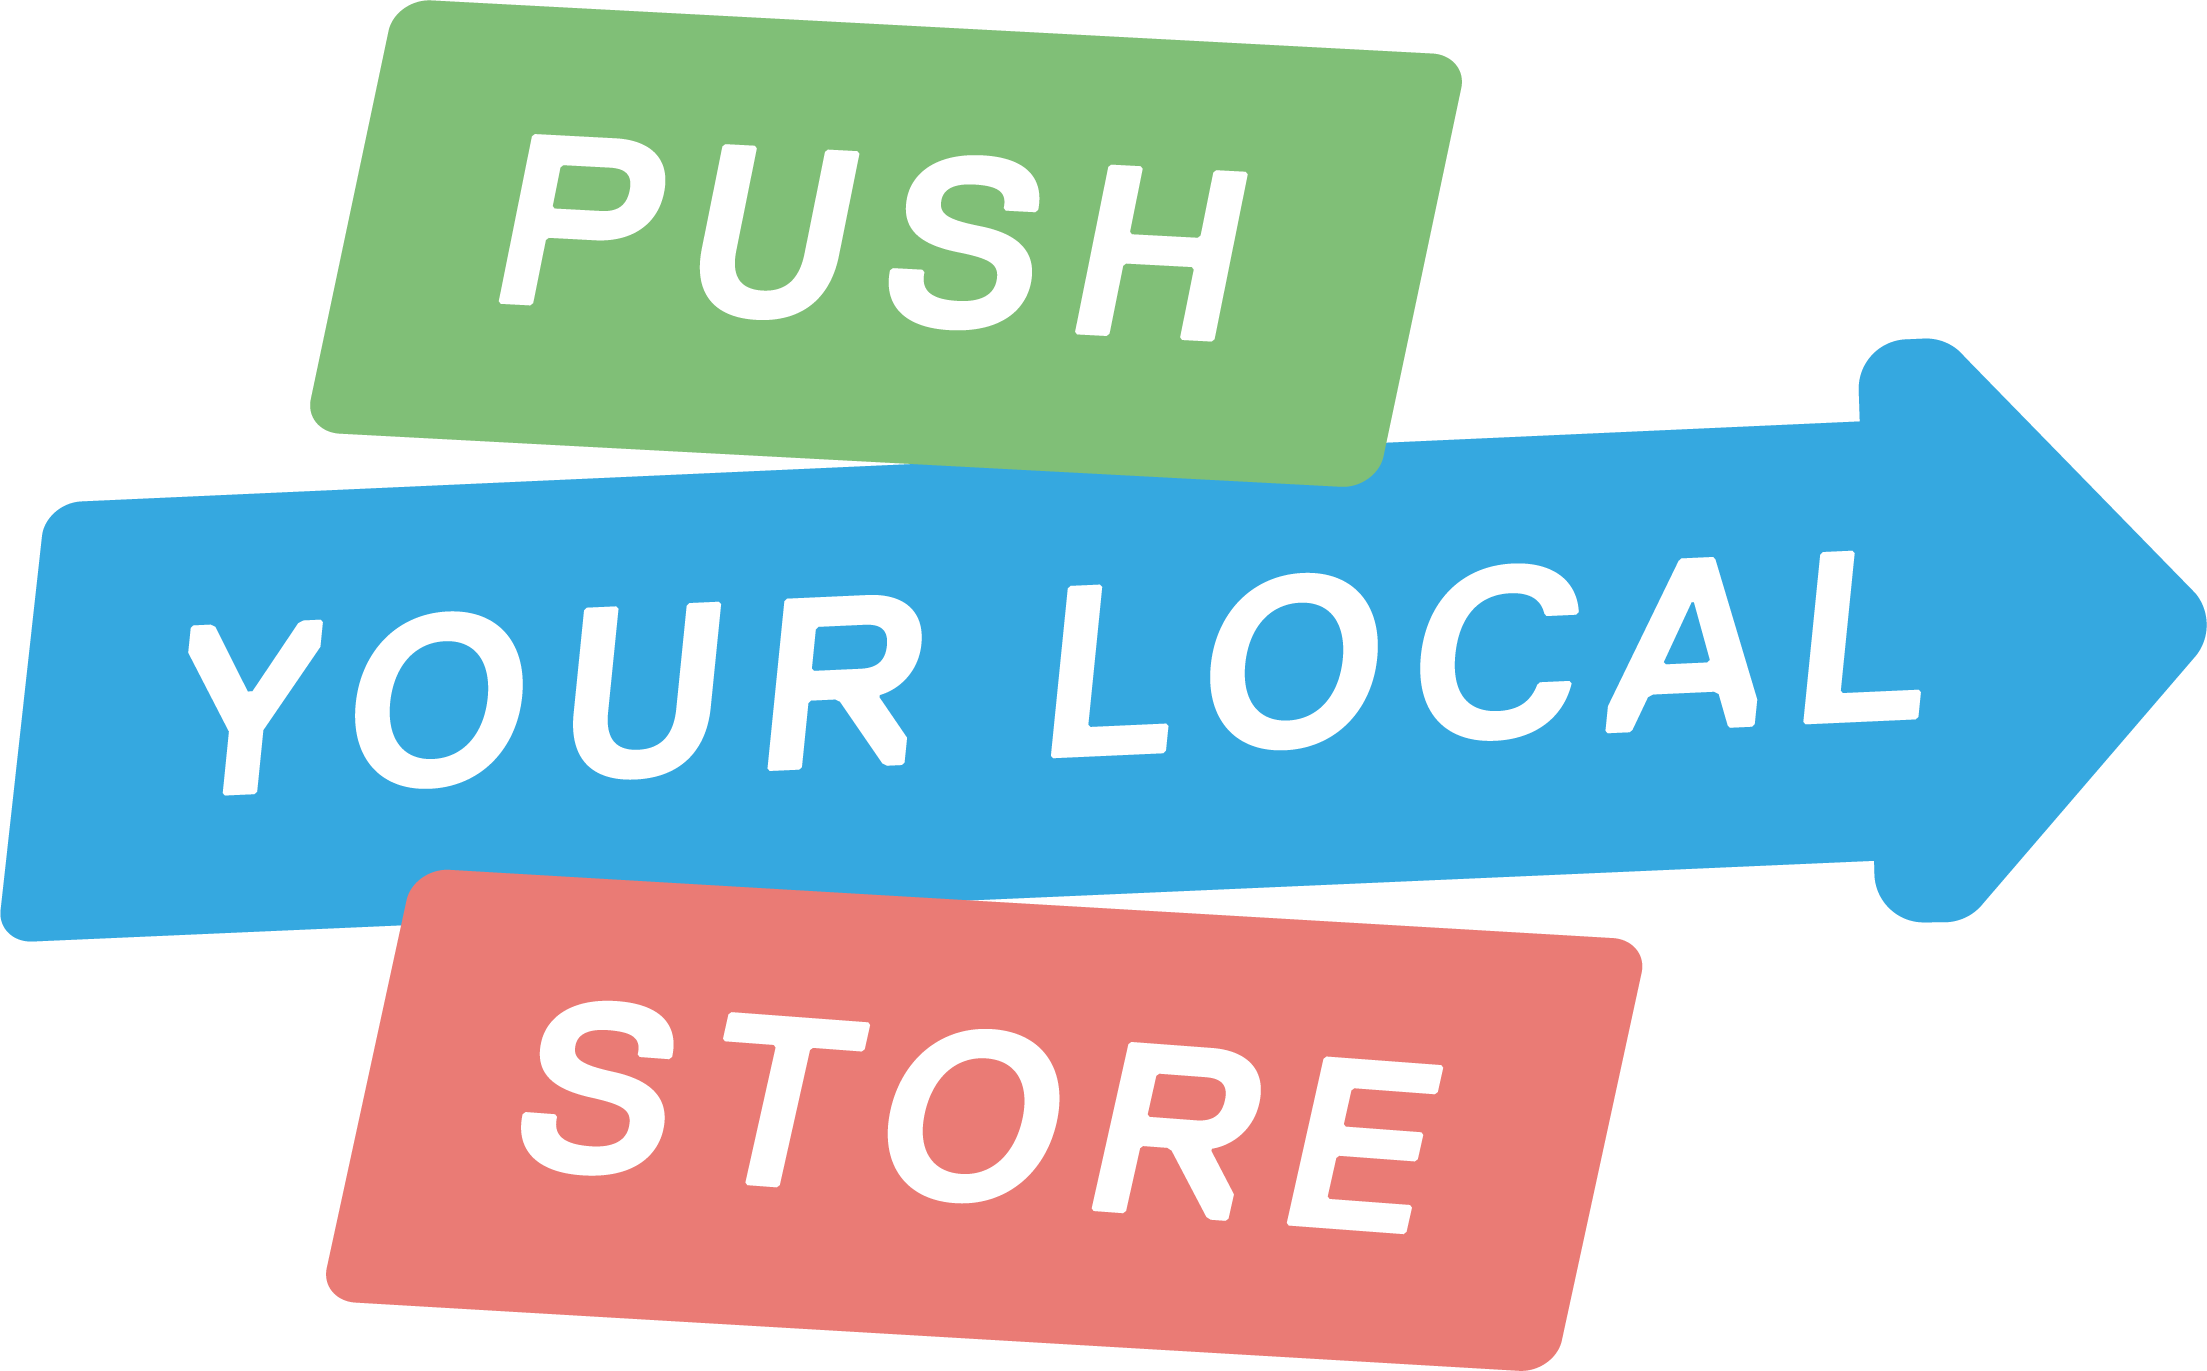 Push Your Local Store